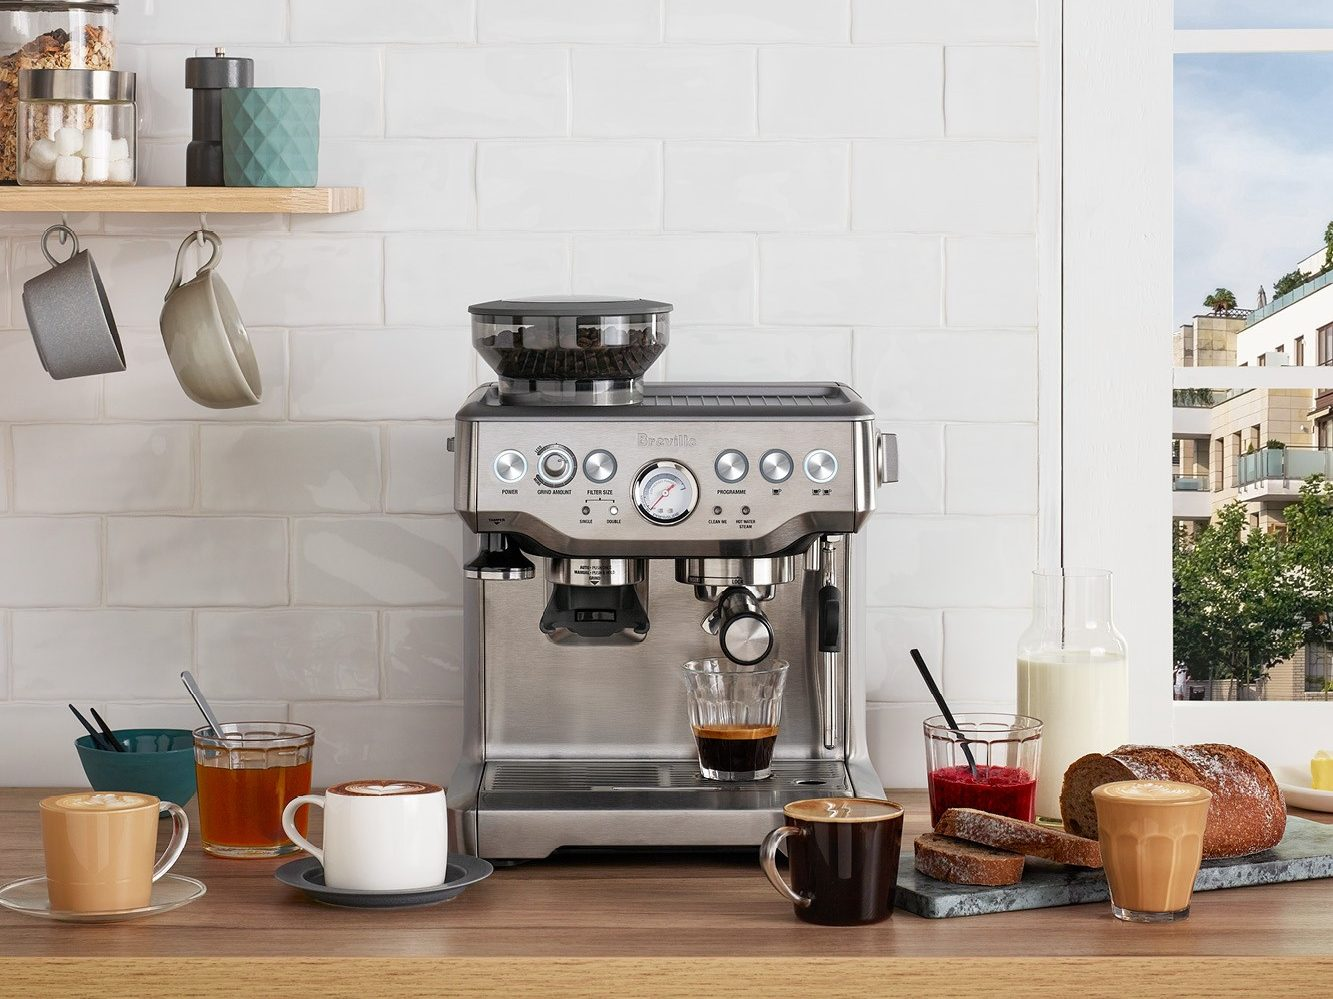 The Best Home Espresso Machines 2020 Top Espresso Maker Reviews Rolling Stone,Best Moscato Wine 2018